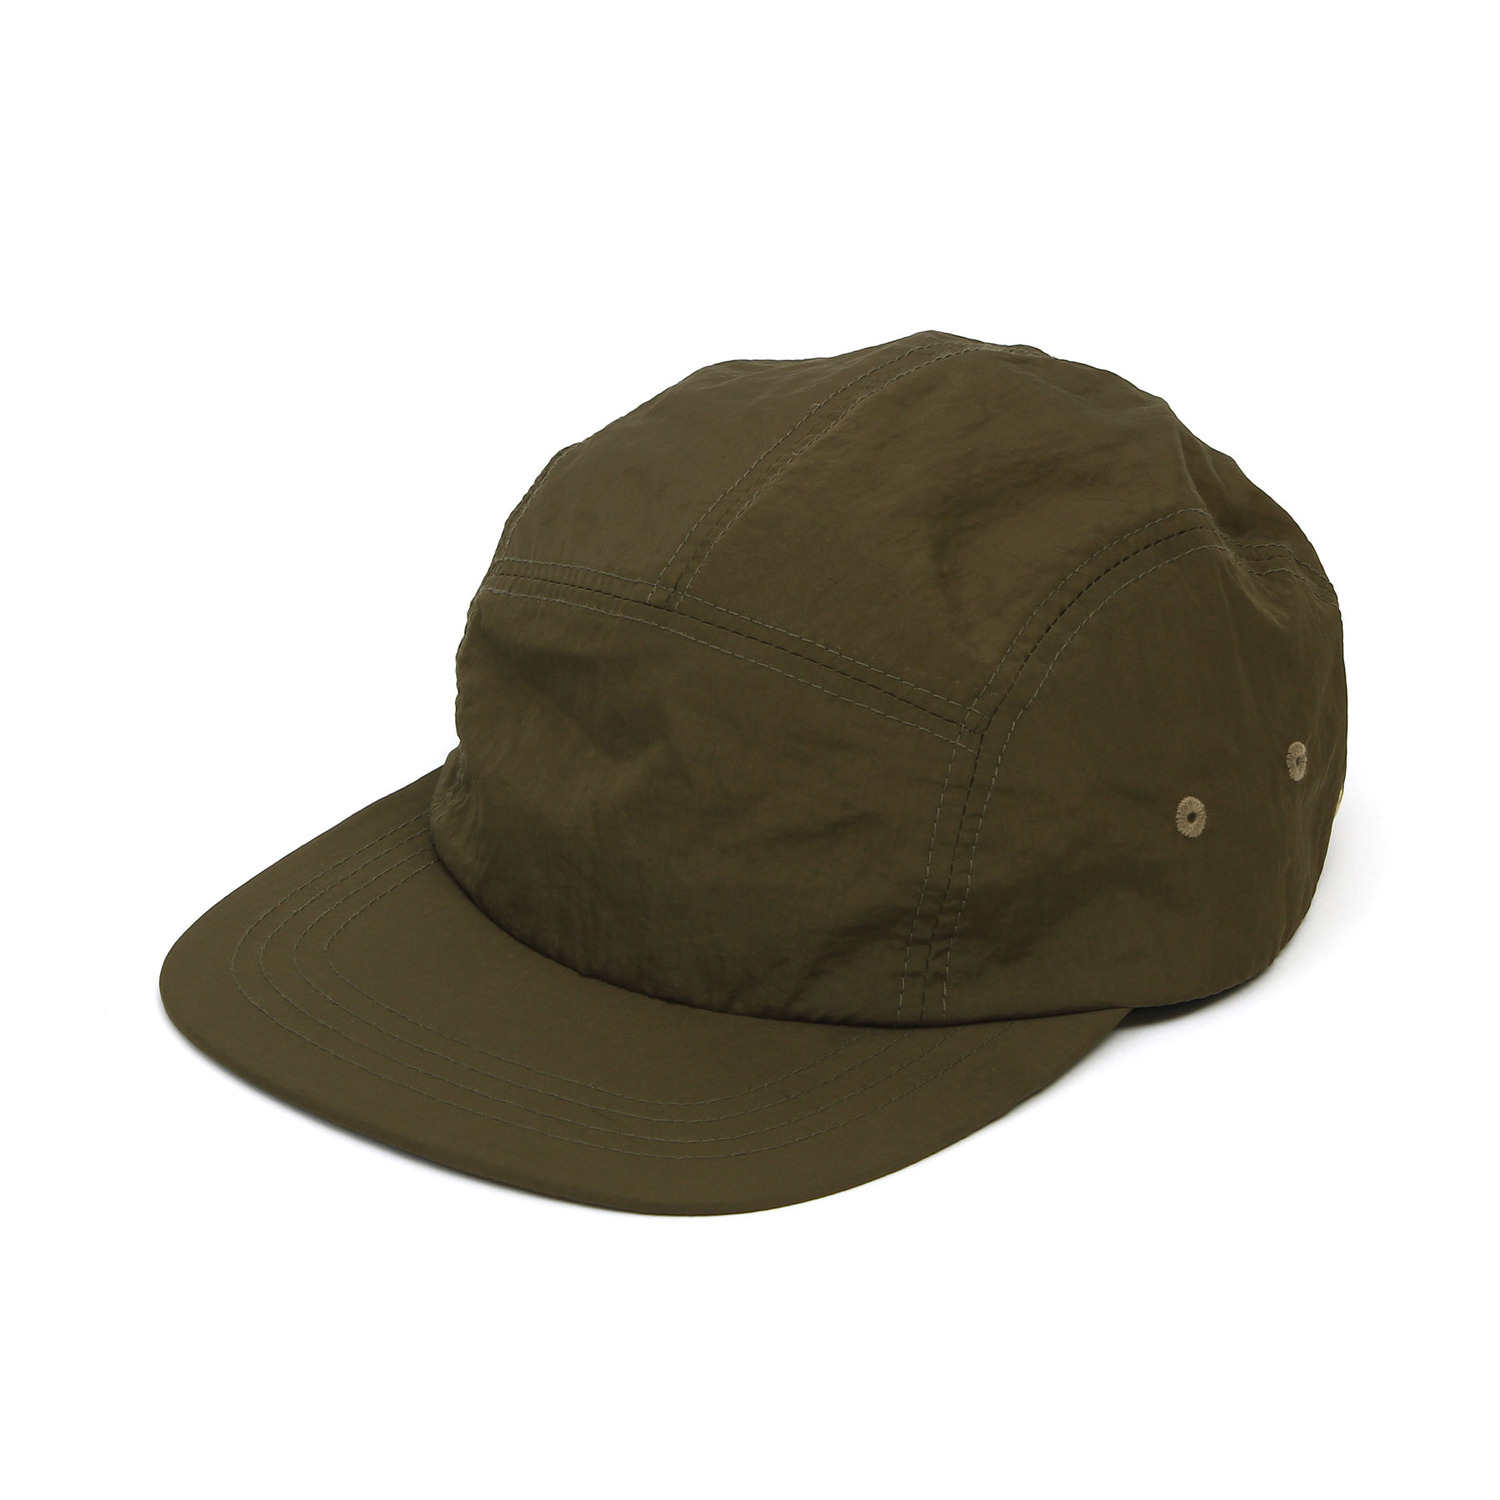 JET CAP / CRUSHED NYLON / ARMY